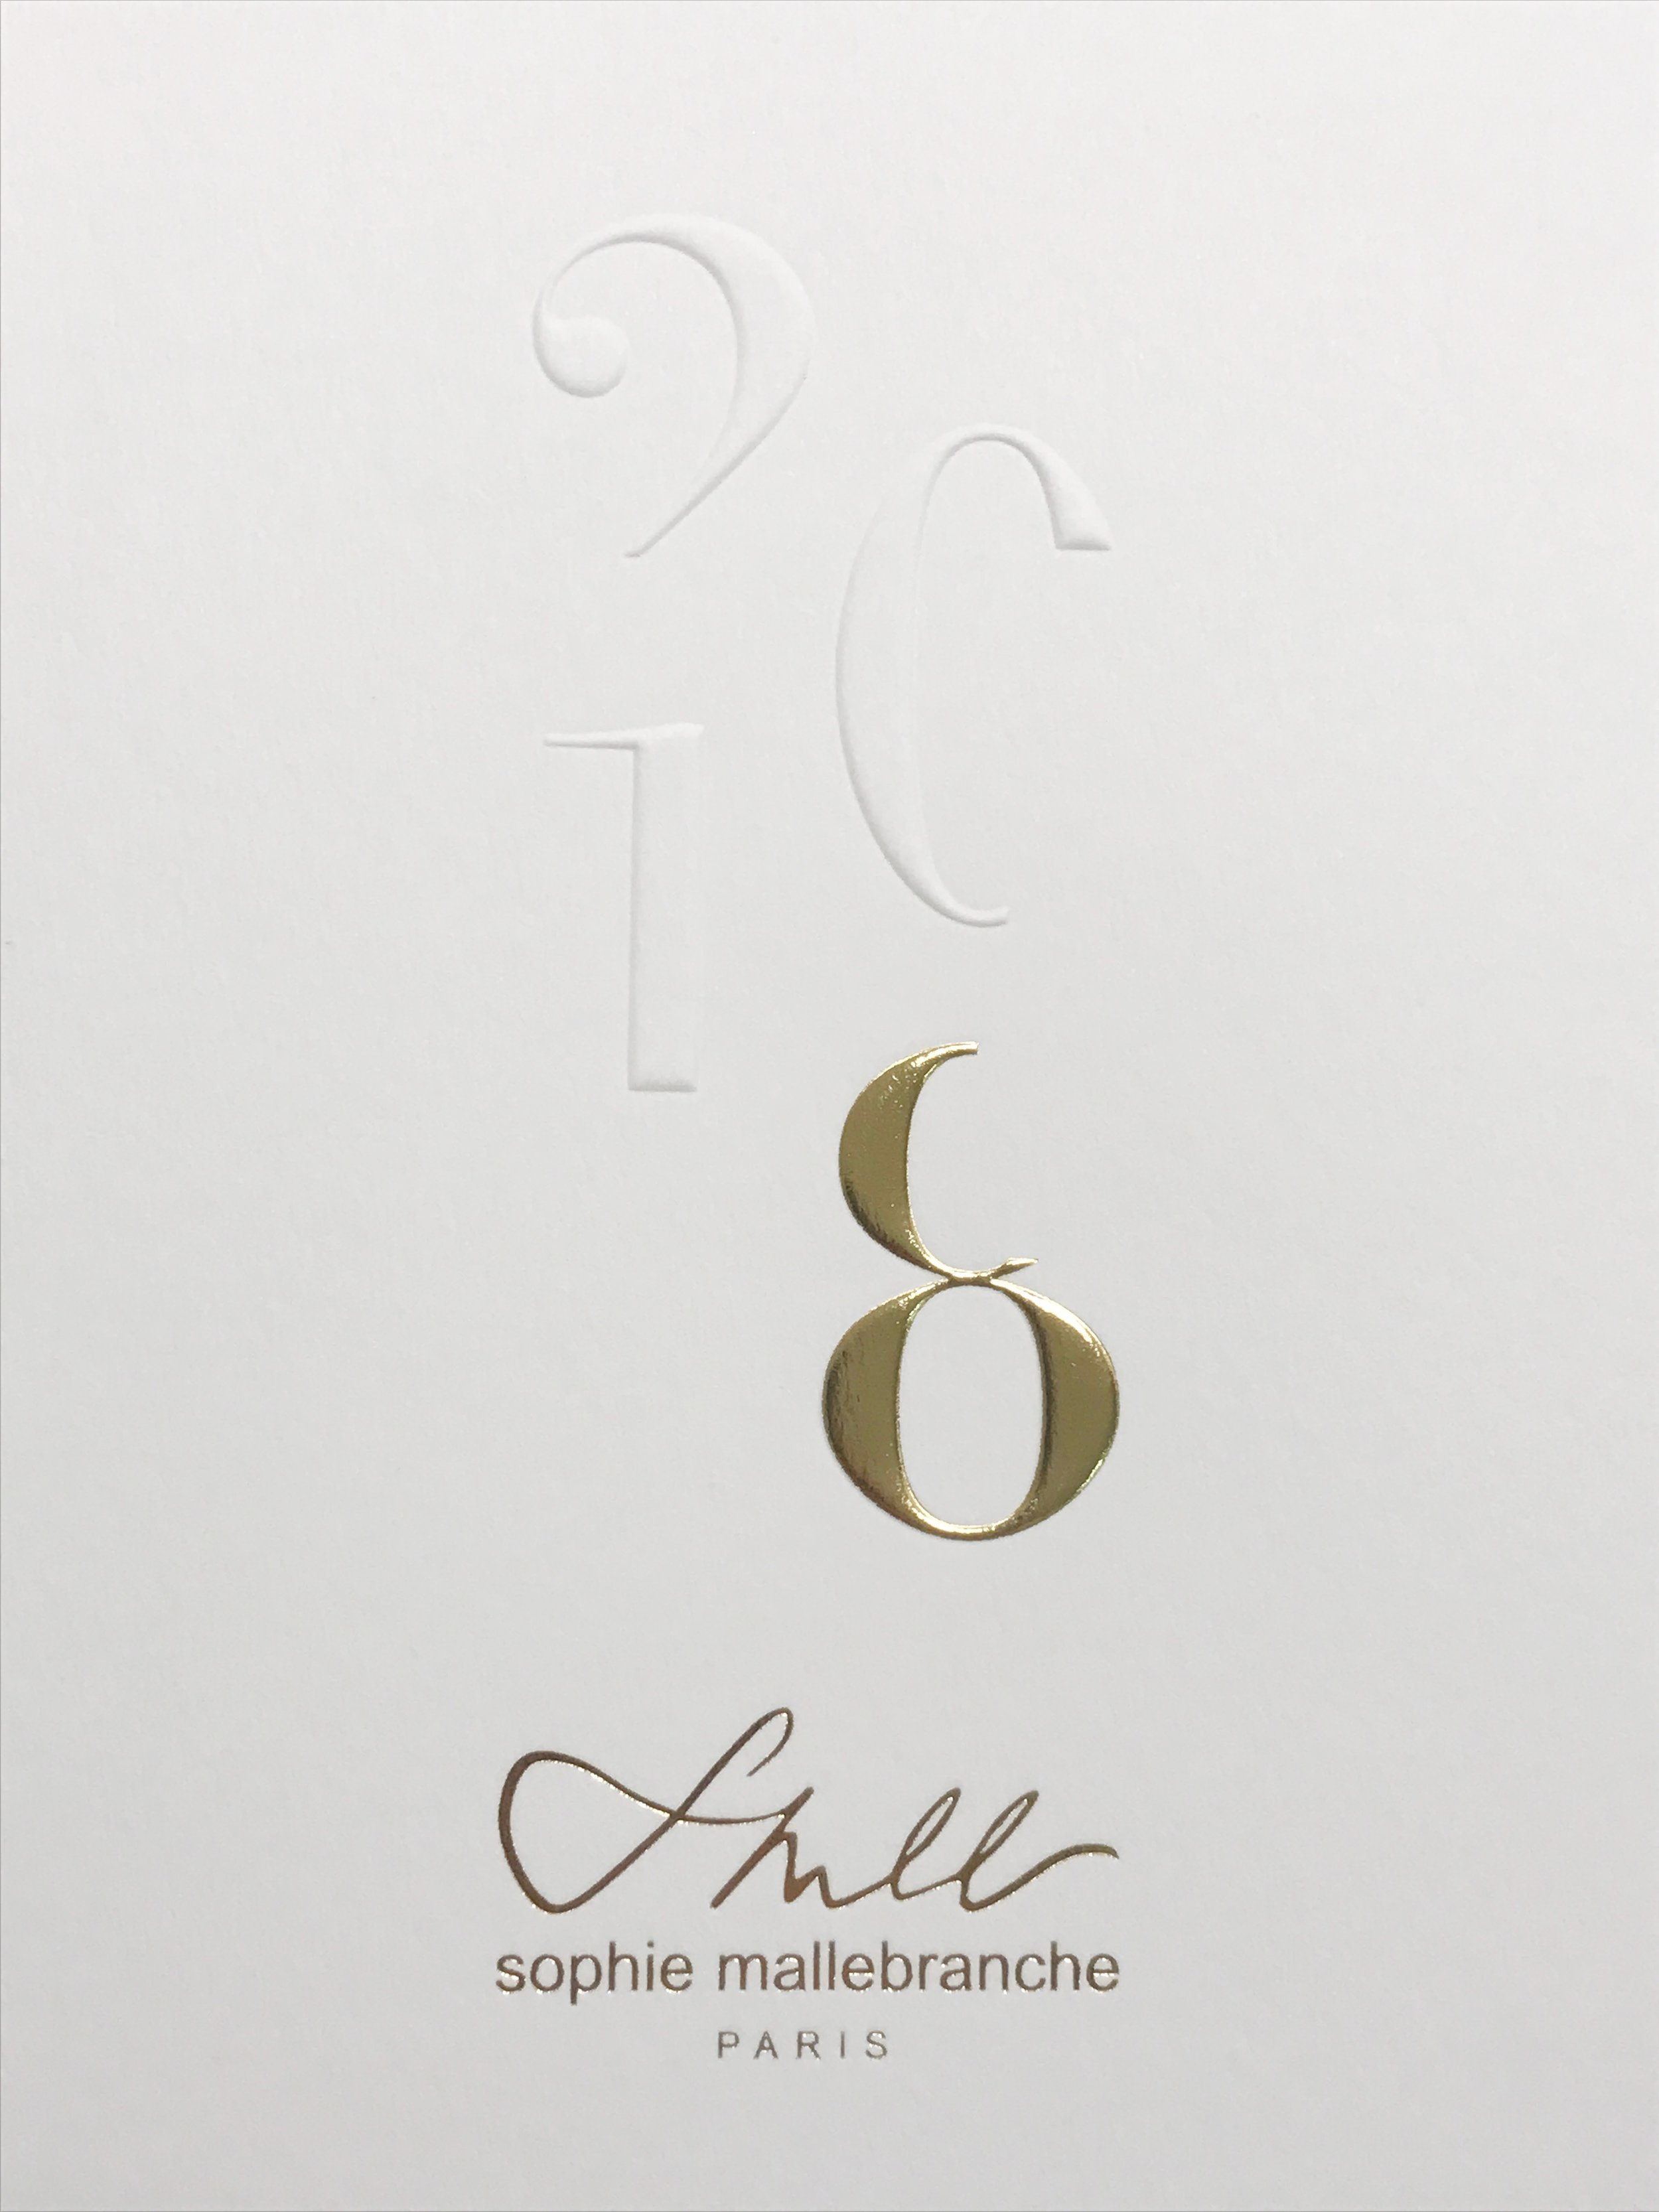 New-Year-Wishes-2018-Sophie-Mallebranche-Material-Design-Group